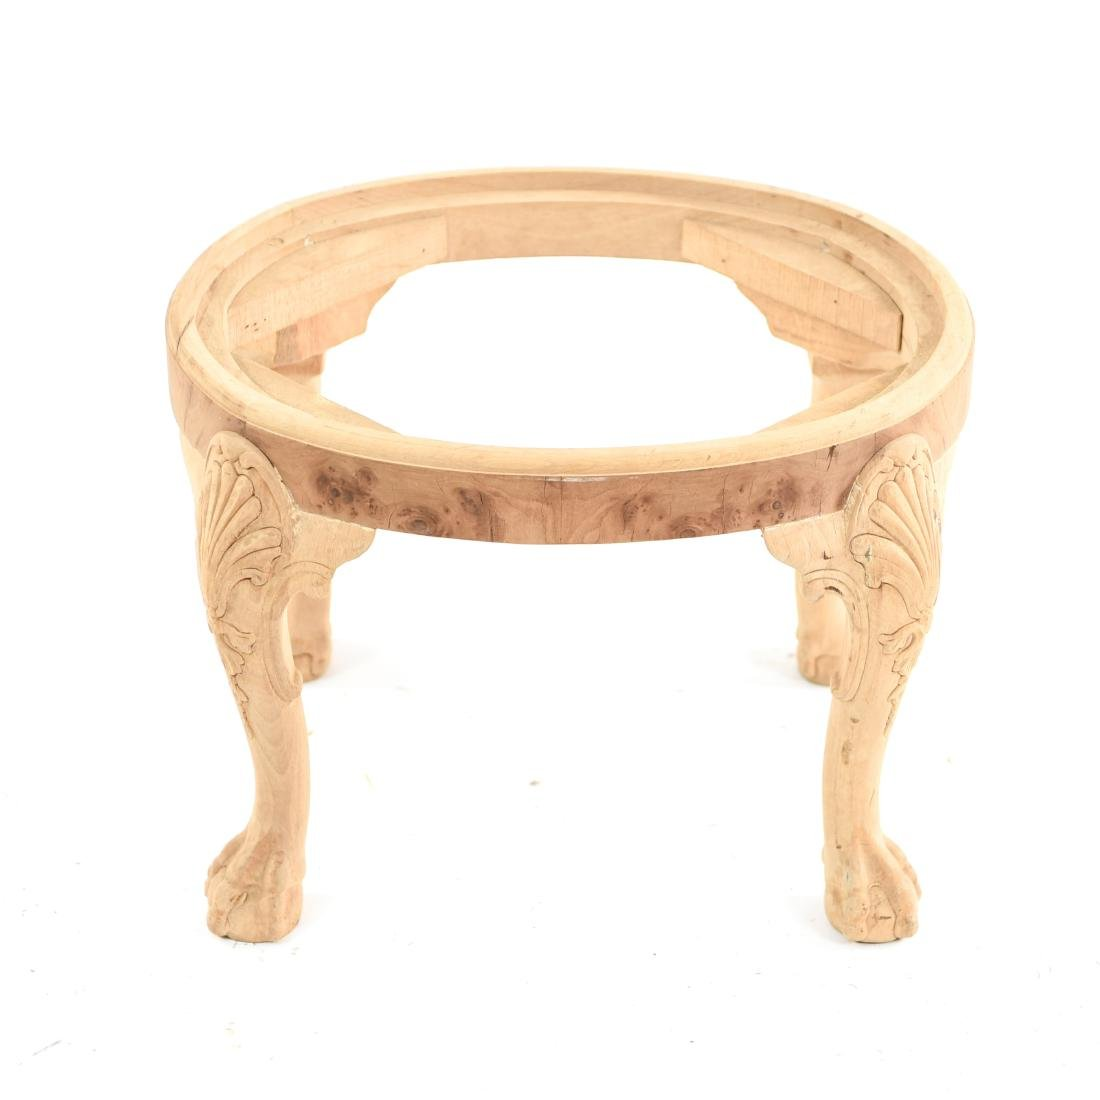 BALL AND CLAW FOOT CARVED SEAT OR BENCH BASE - 7